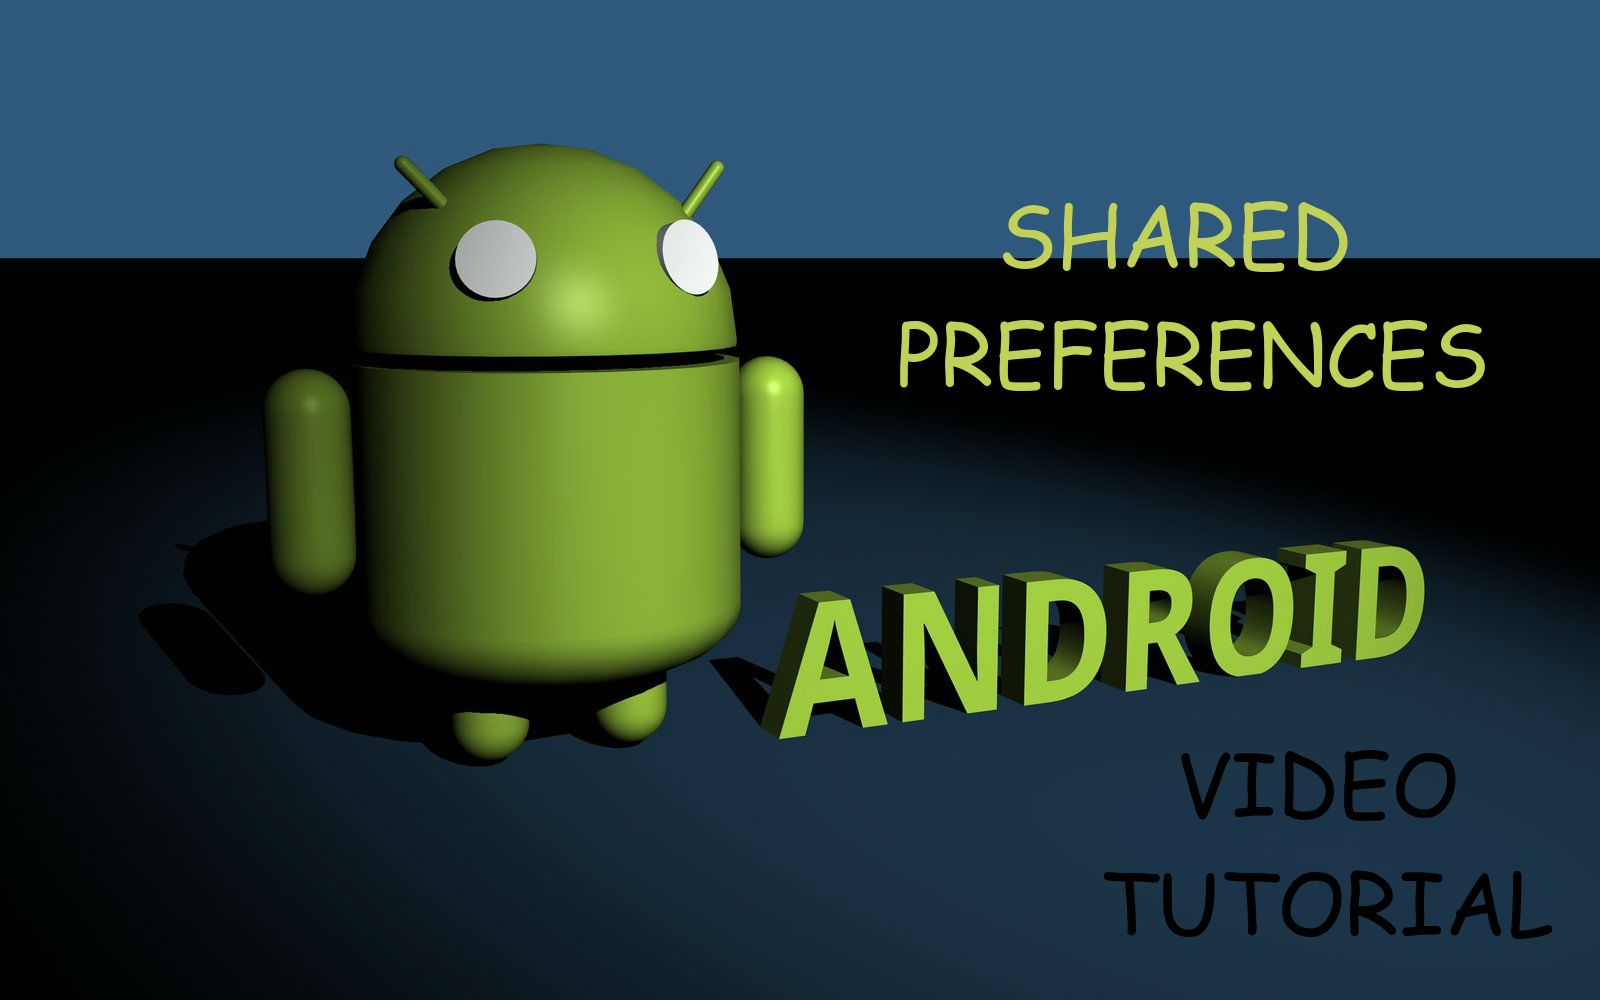 Android Shared Preferences